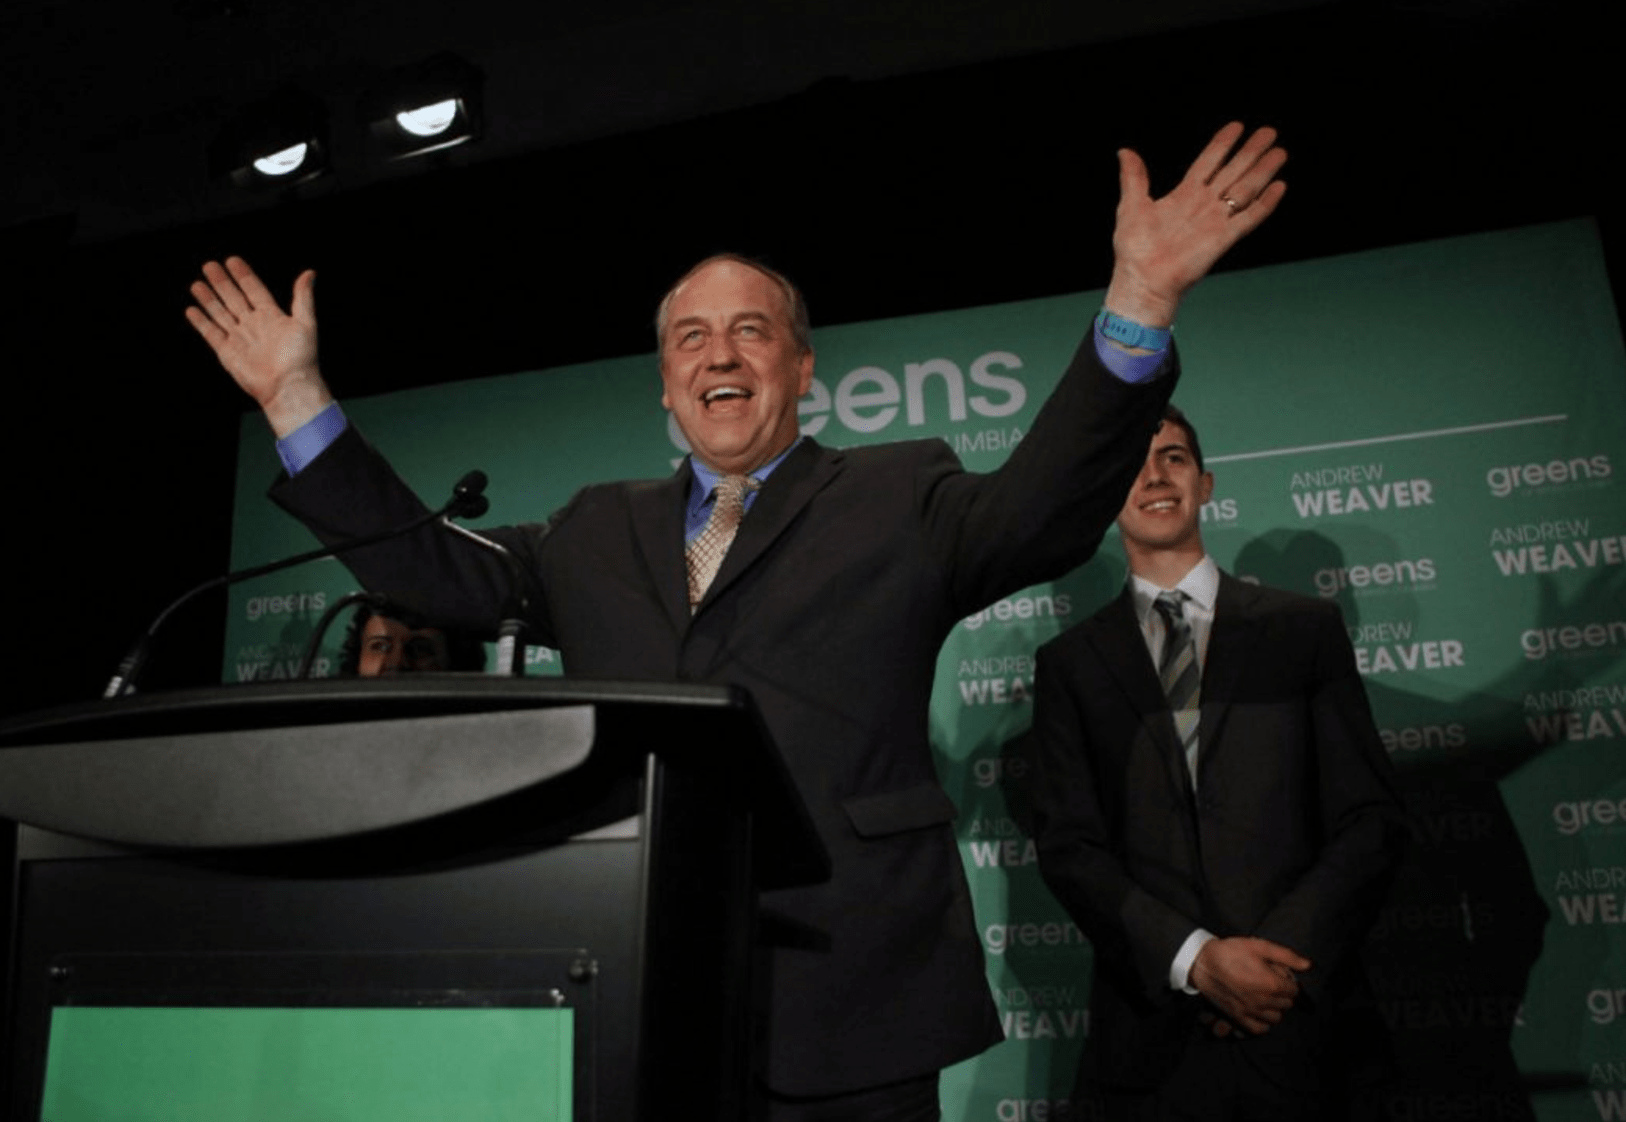 Andrew_Weaver_-_Canadian_Press-min.png